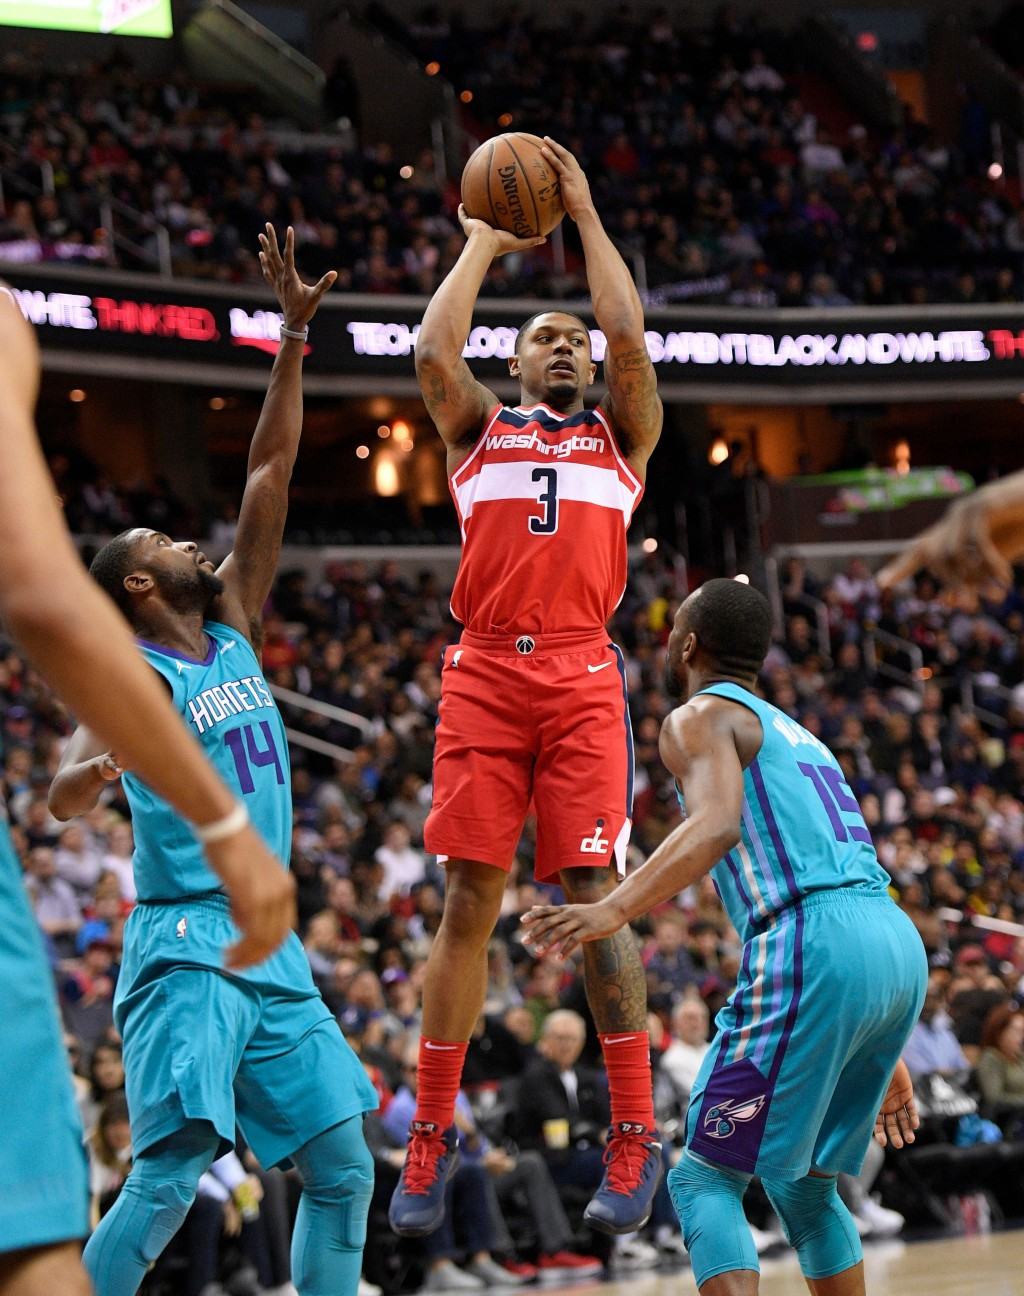 Washington Wizards guard Bradley Beal (3) looks to pass against Charlotte Hornets forward Michael Kidd-Gilchrist (14) and guard Kemba Walker (15) duri...